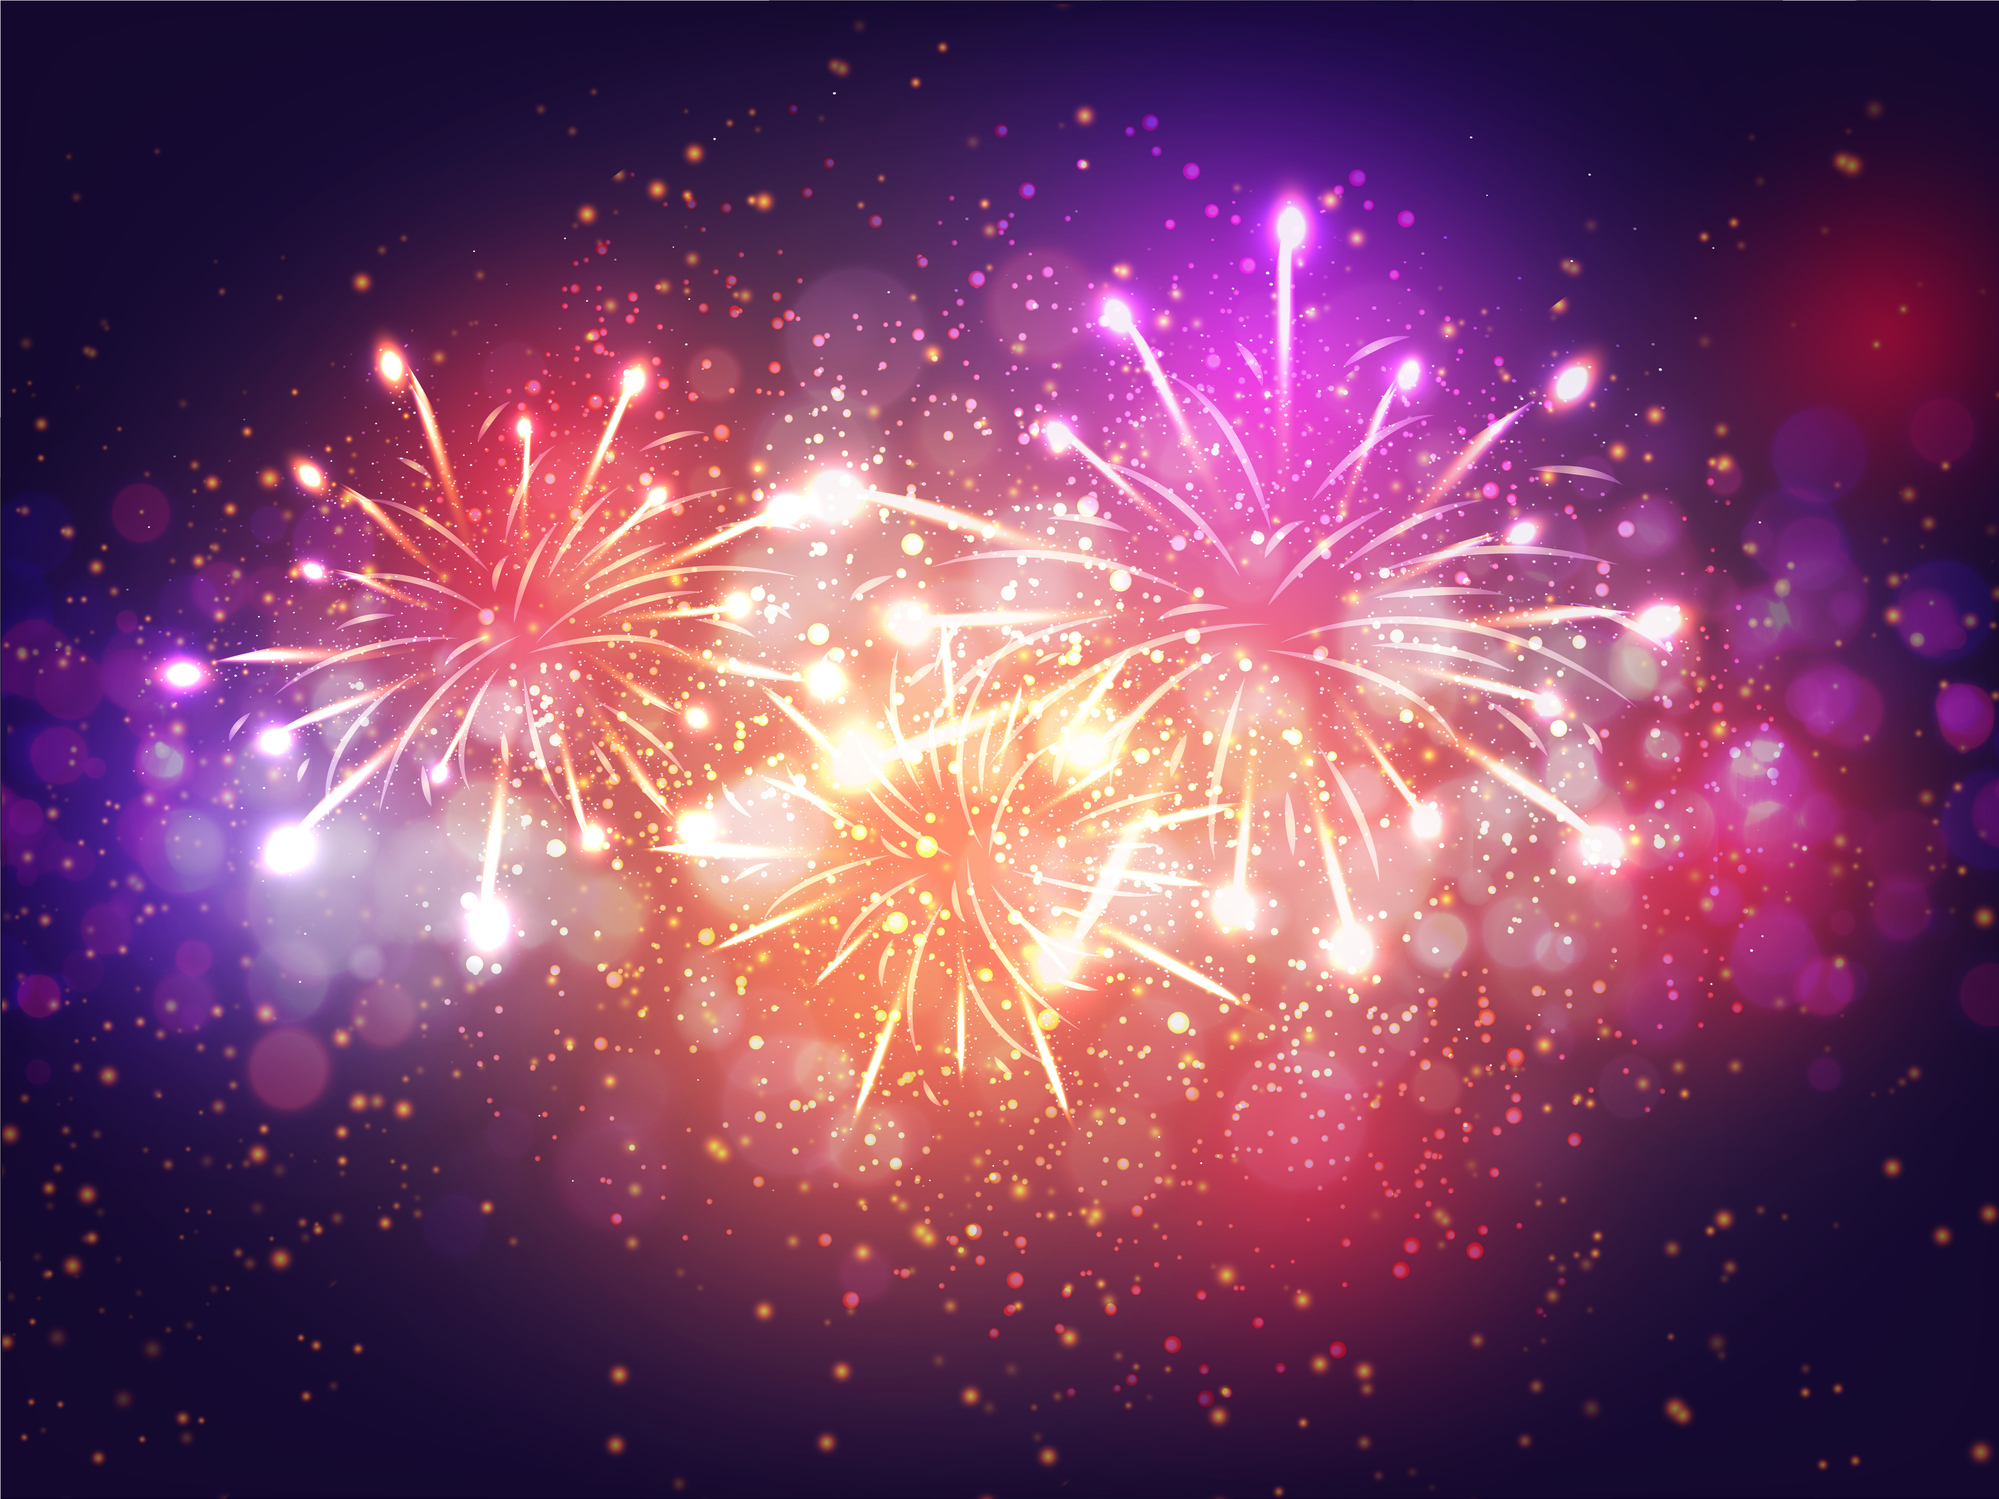 Colorful Fireworks Lighting Effect on Purple Background for Celebration Concept.